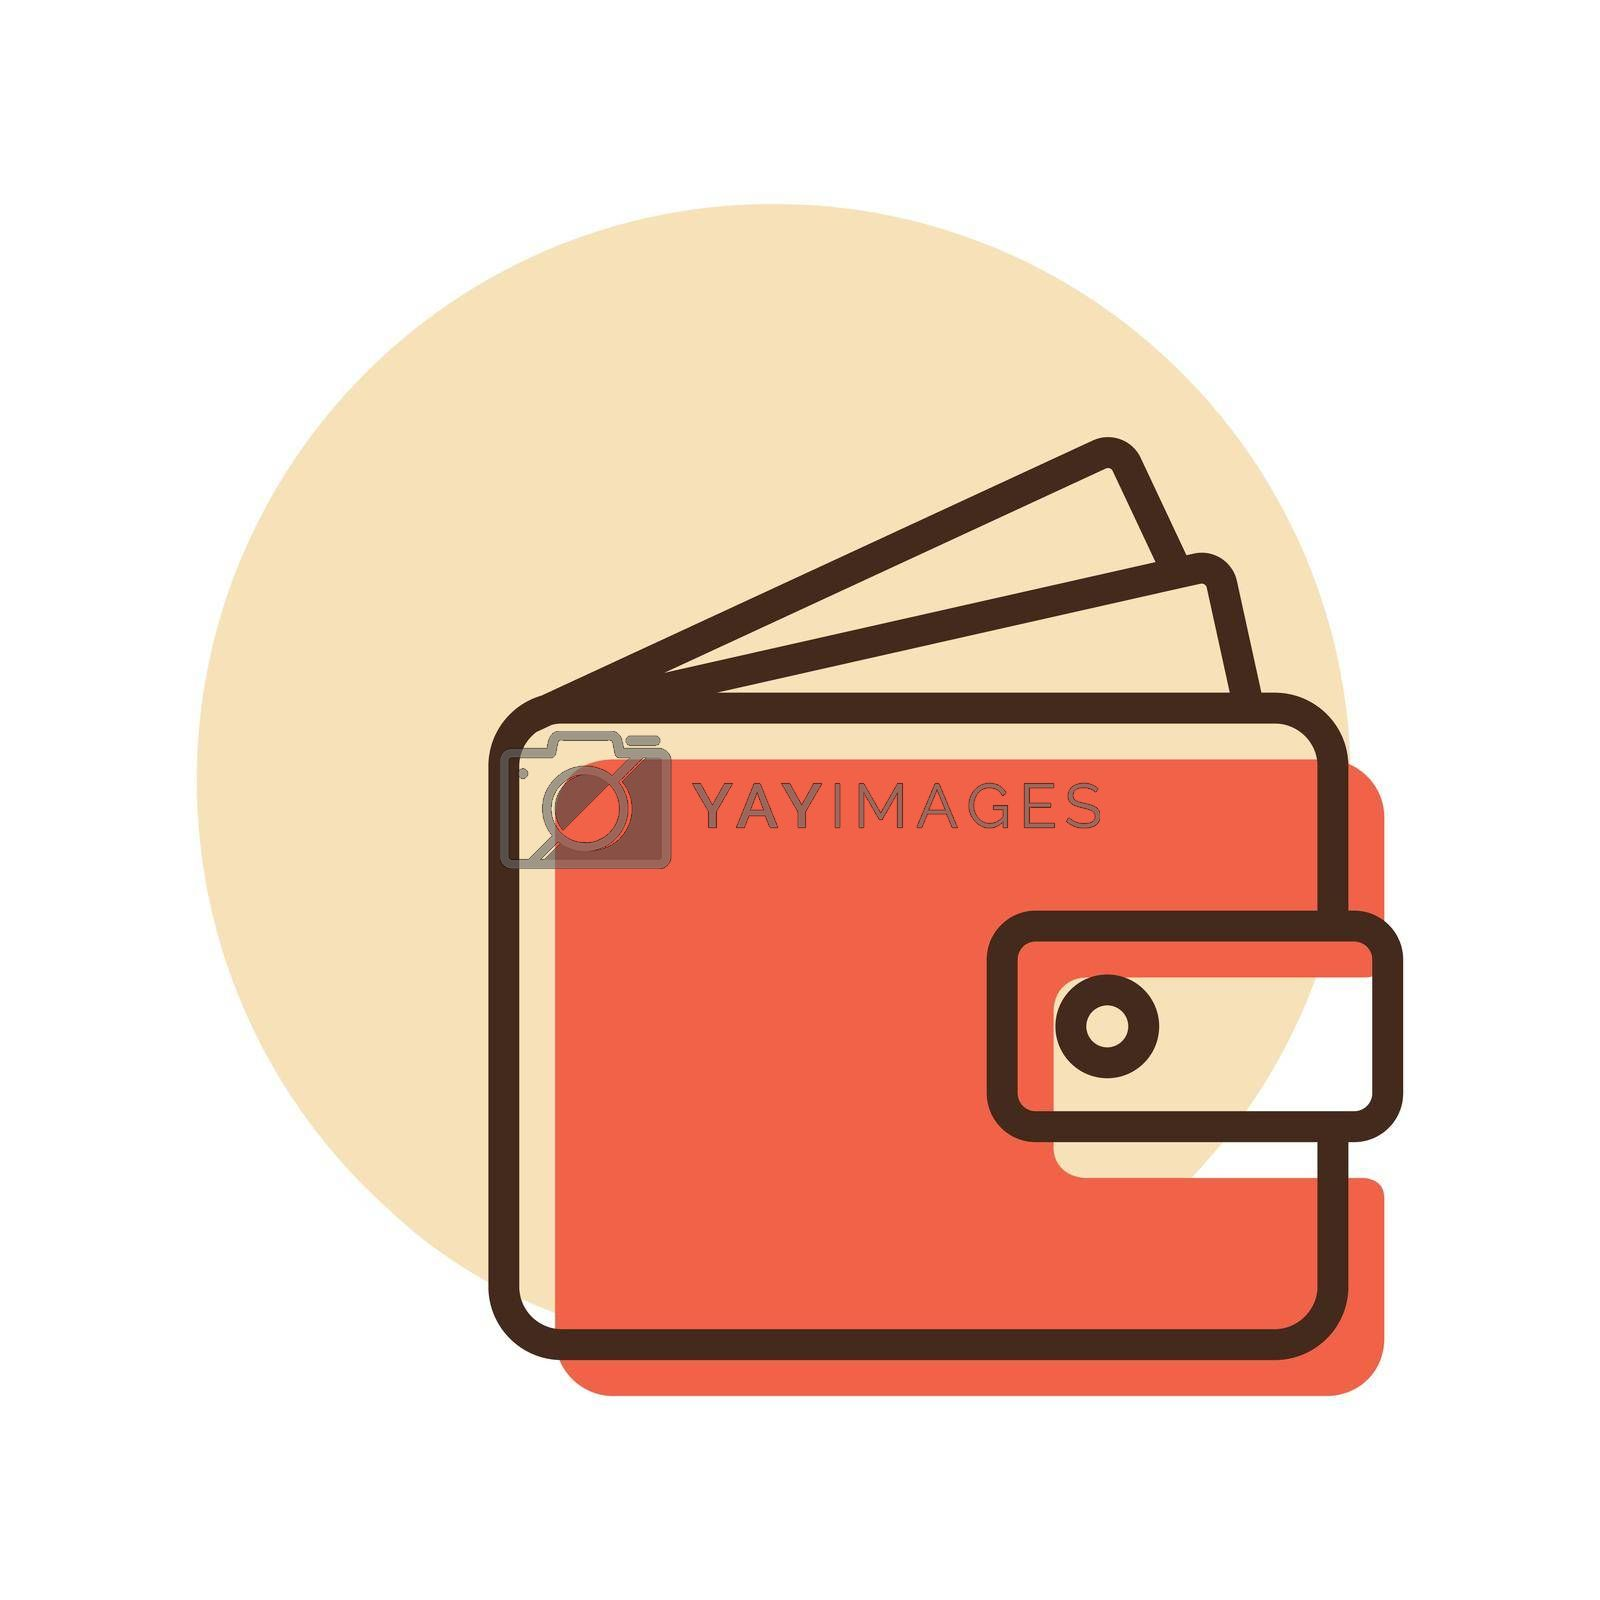 Purse icon vector. Money sign Isolated. Pay, online mobile payment, bill, payment, salary, shopping concept. E-commerce